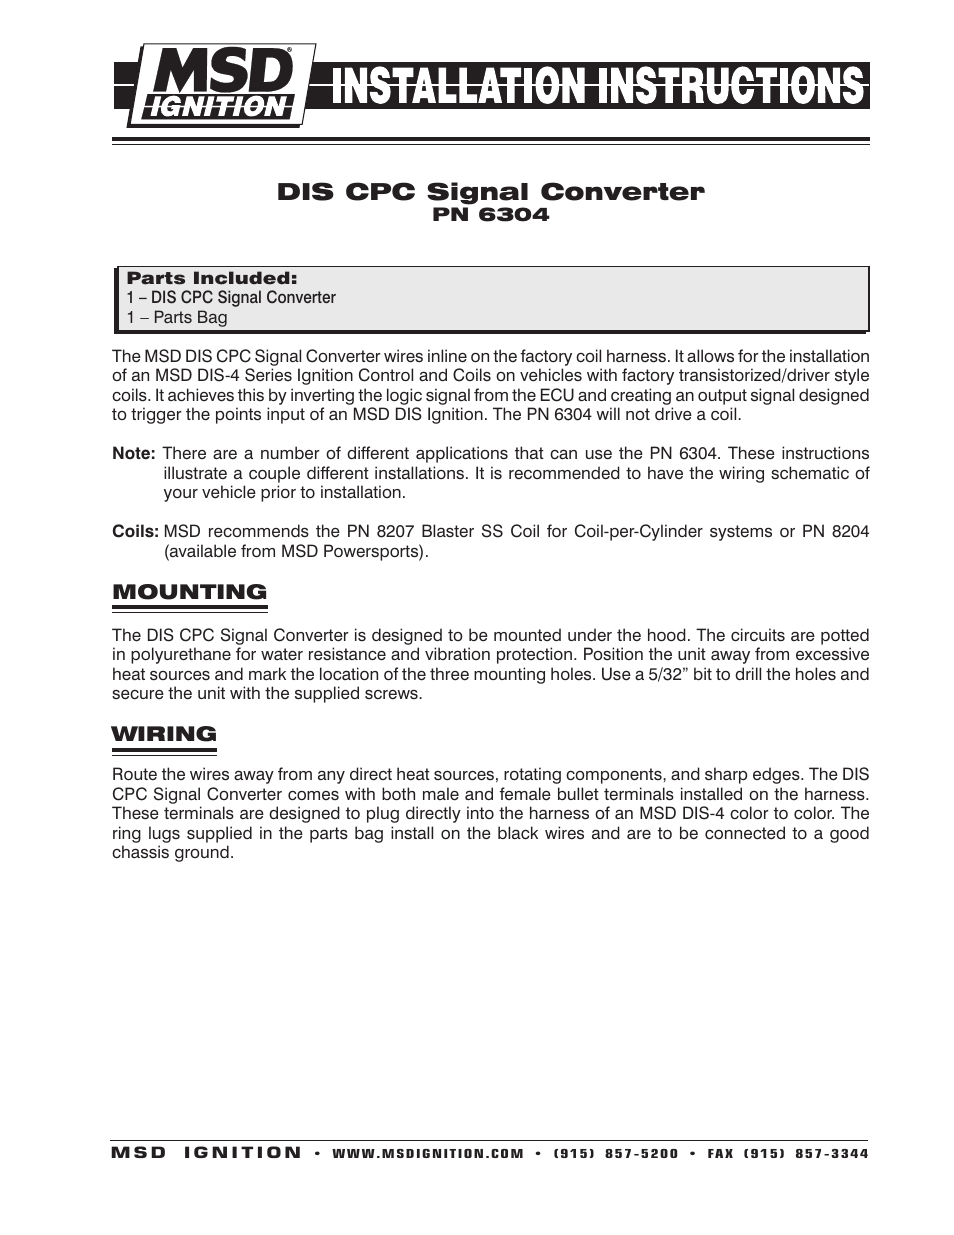 msd 6304 dis cpc signal converter 4 channel installation page1 msd 6304 dis cpc signal converter, 4 channel installation user msd 6200 wiring diagram at gsmx.co